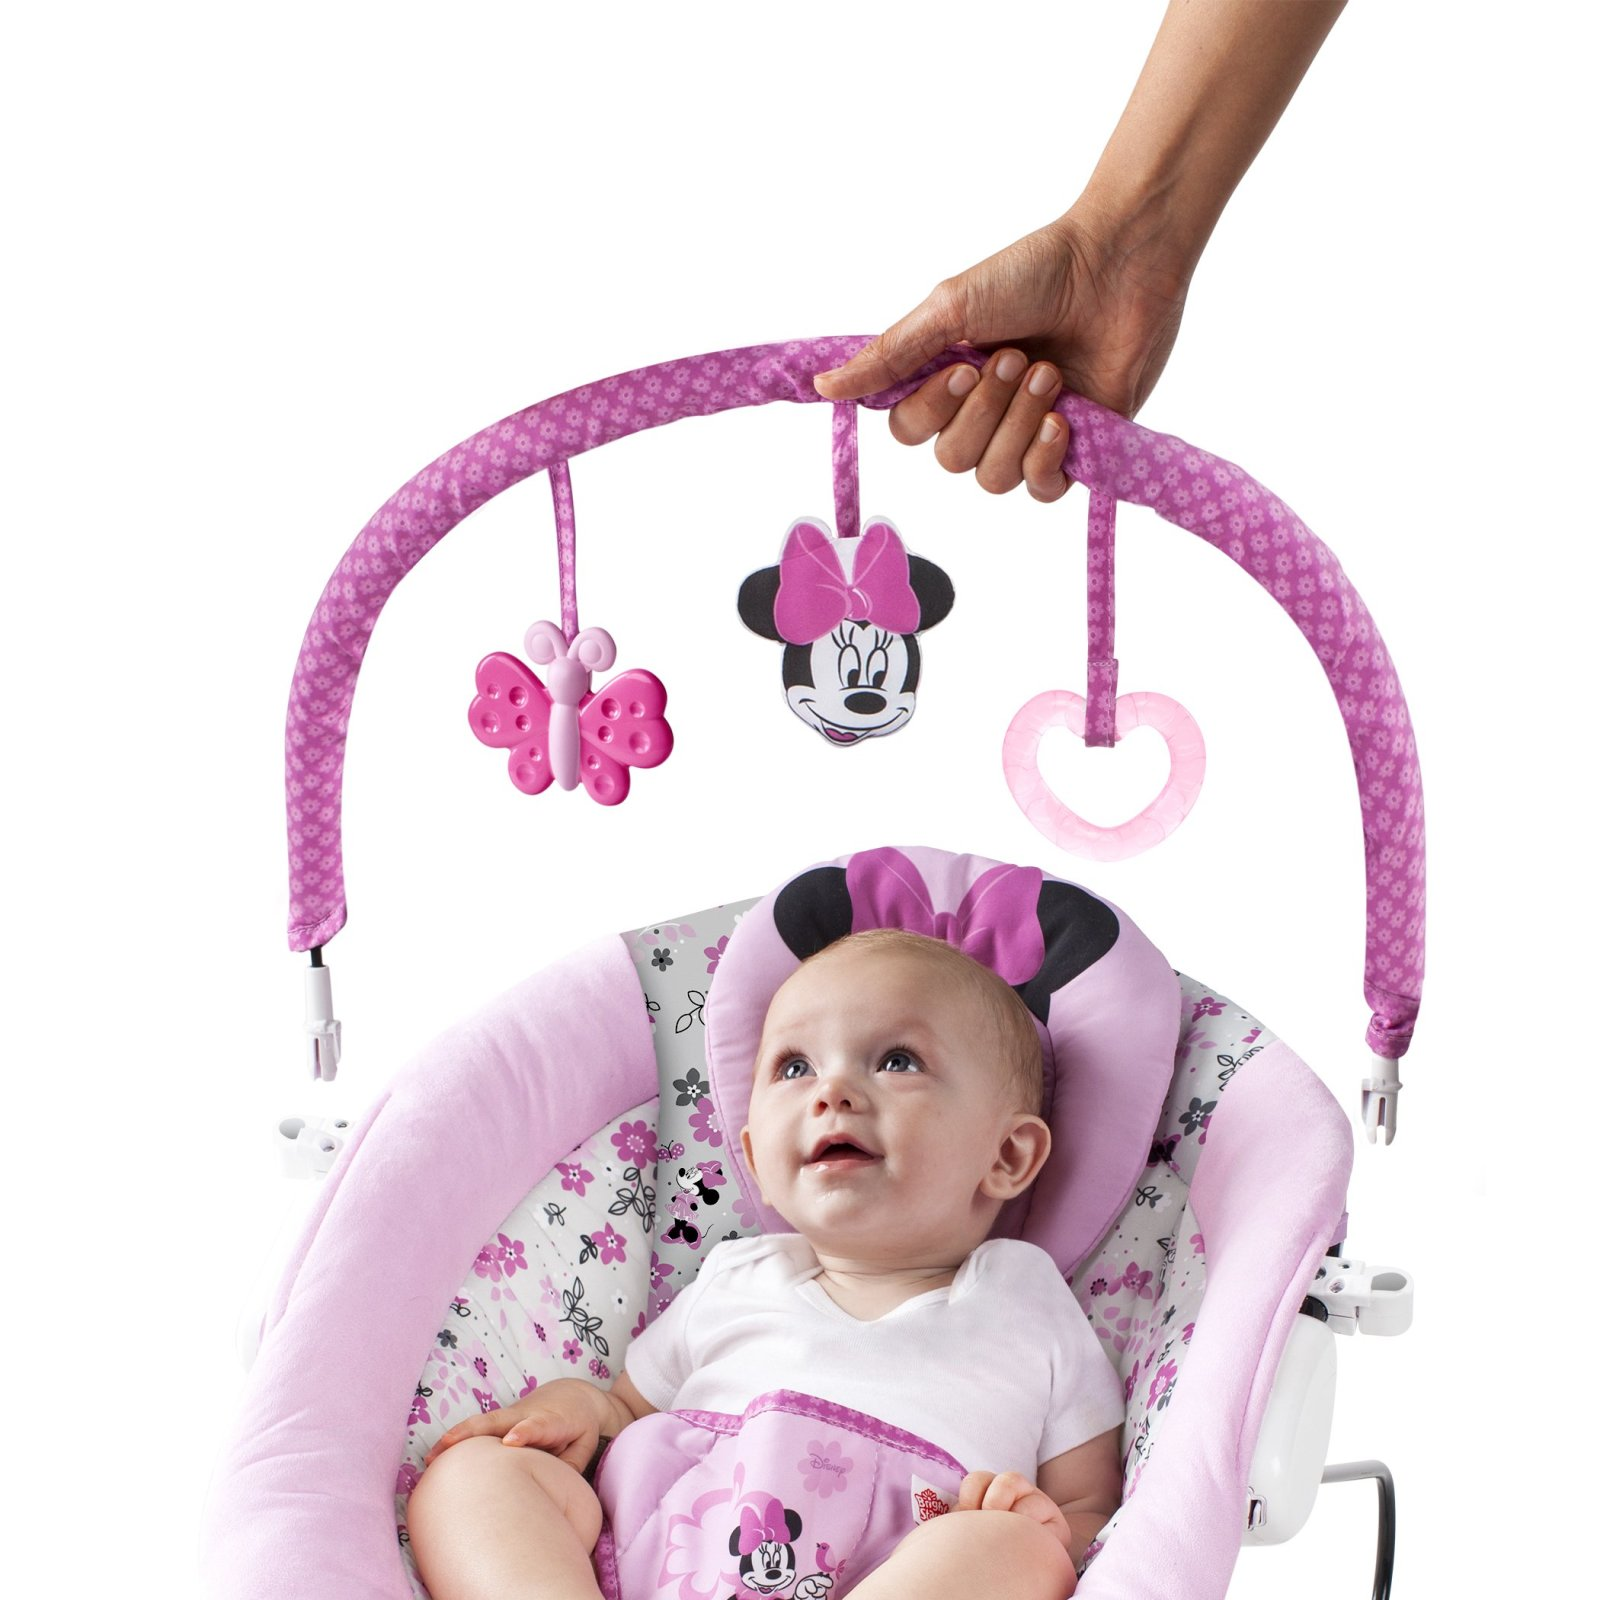 Baby girl vibrating chair - Disney Baby Minnie Mouse Garden Delights Bouncer Girl Pink Basket Seat Swing Bouncy Infant Chair Fast Free Shipping